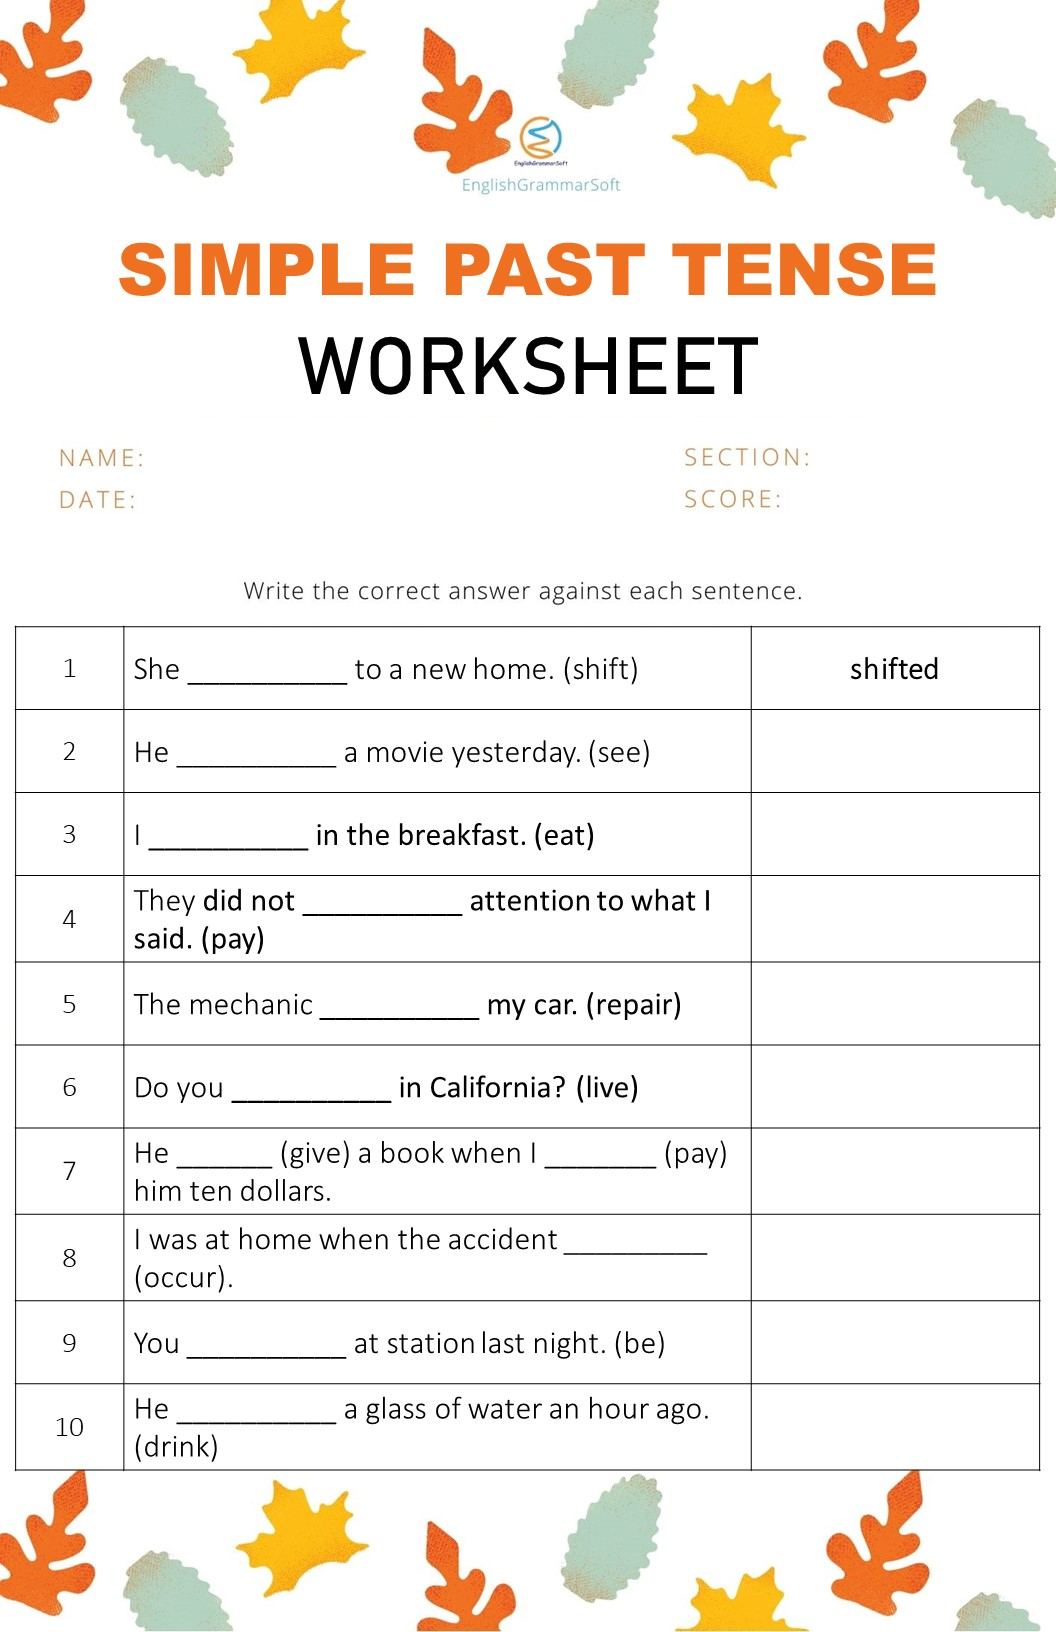 Simple Past Tense Worksheet with Answers